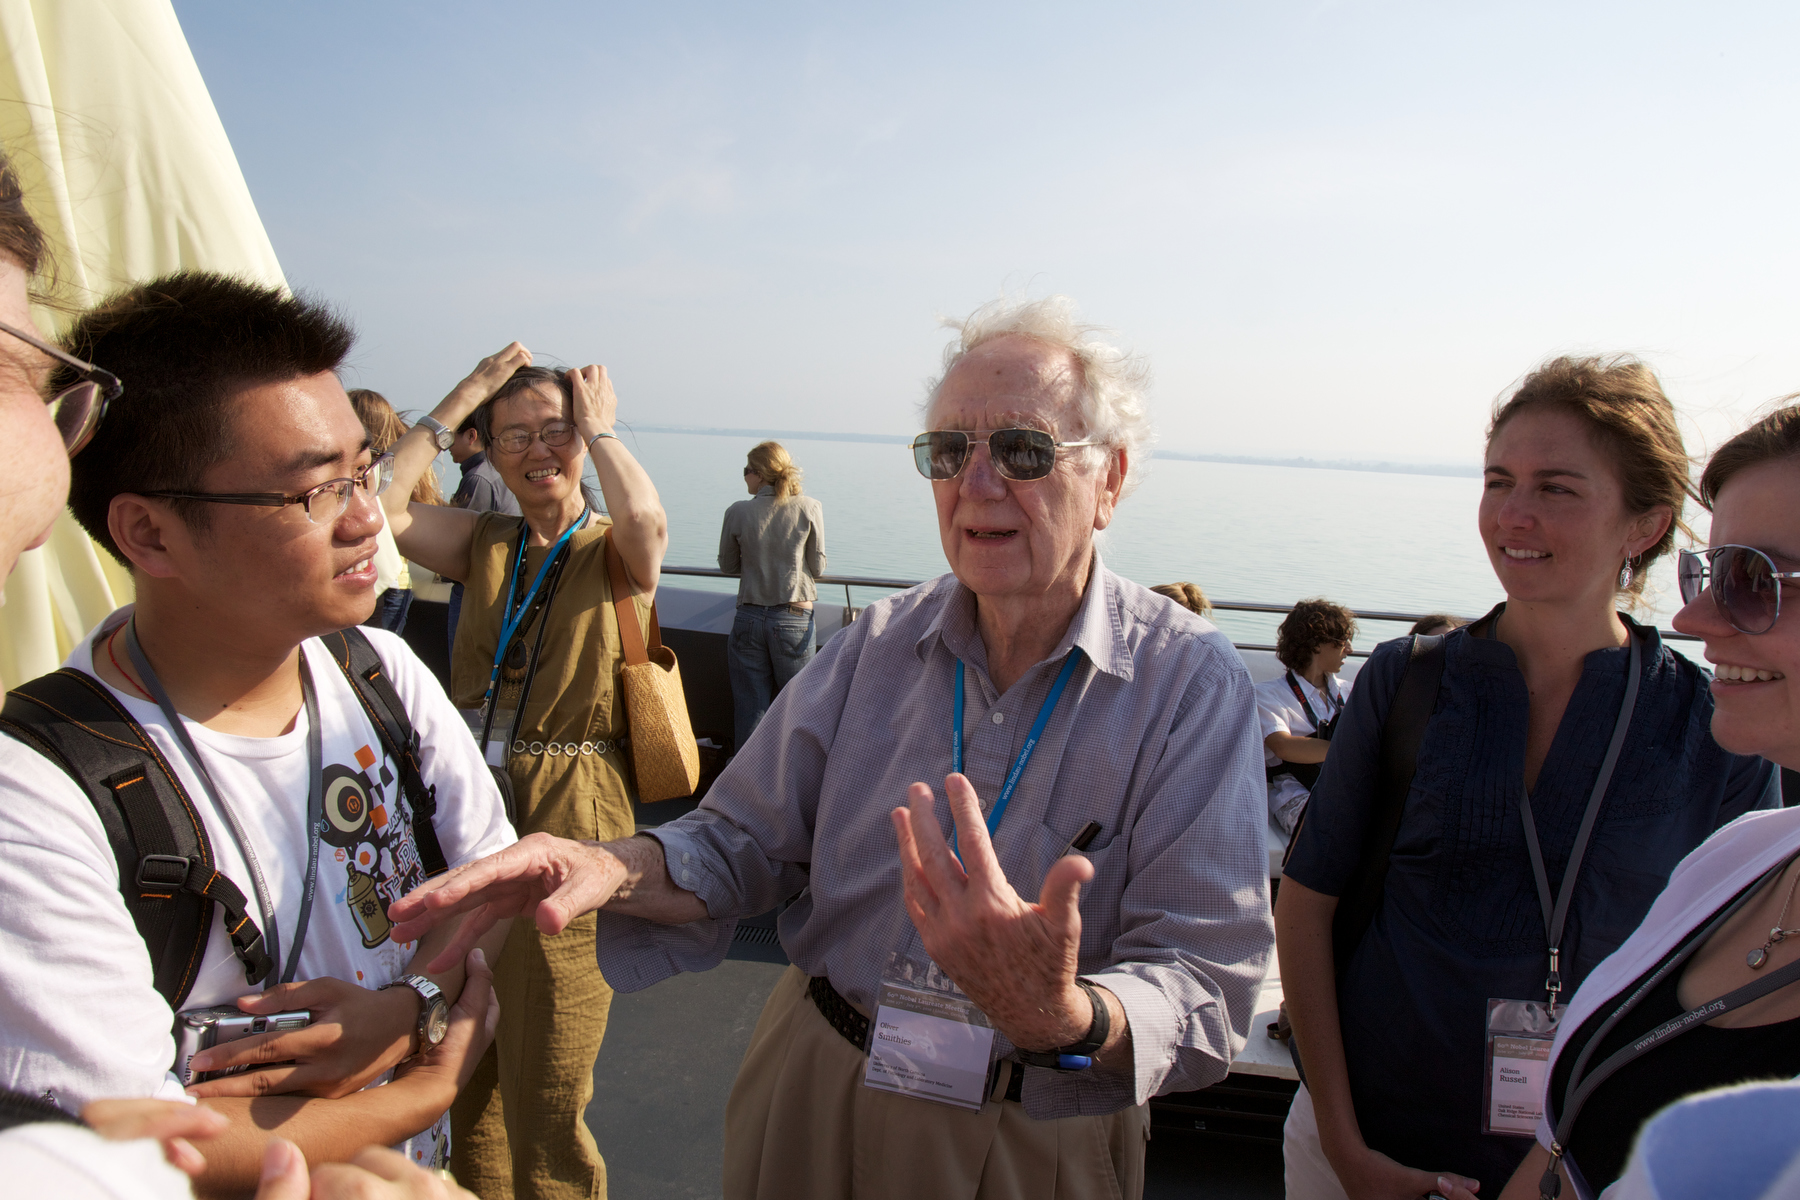 Sharing advice and inspiration with young scientists. Photo: Ch. Flemming/Lindau Nobel Laureate Meetings